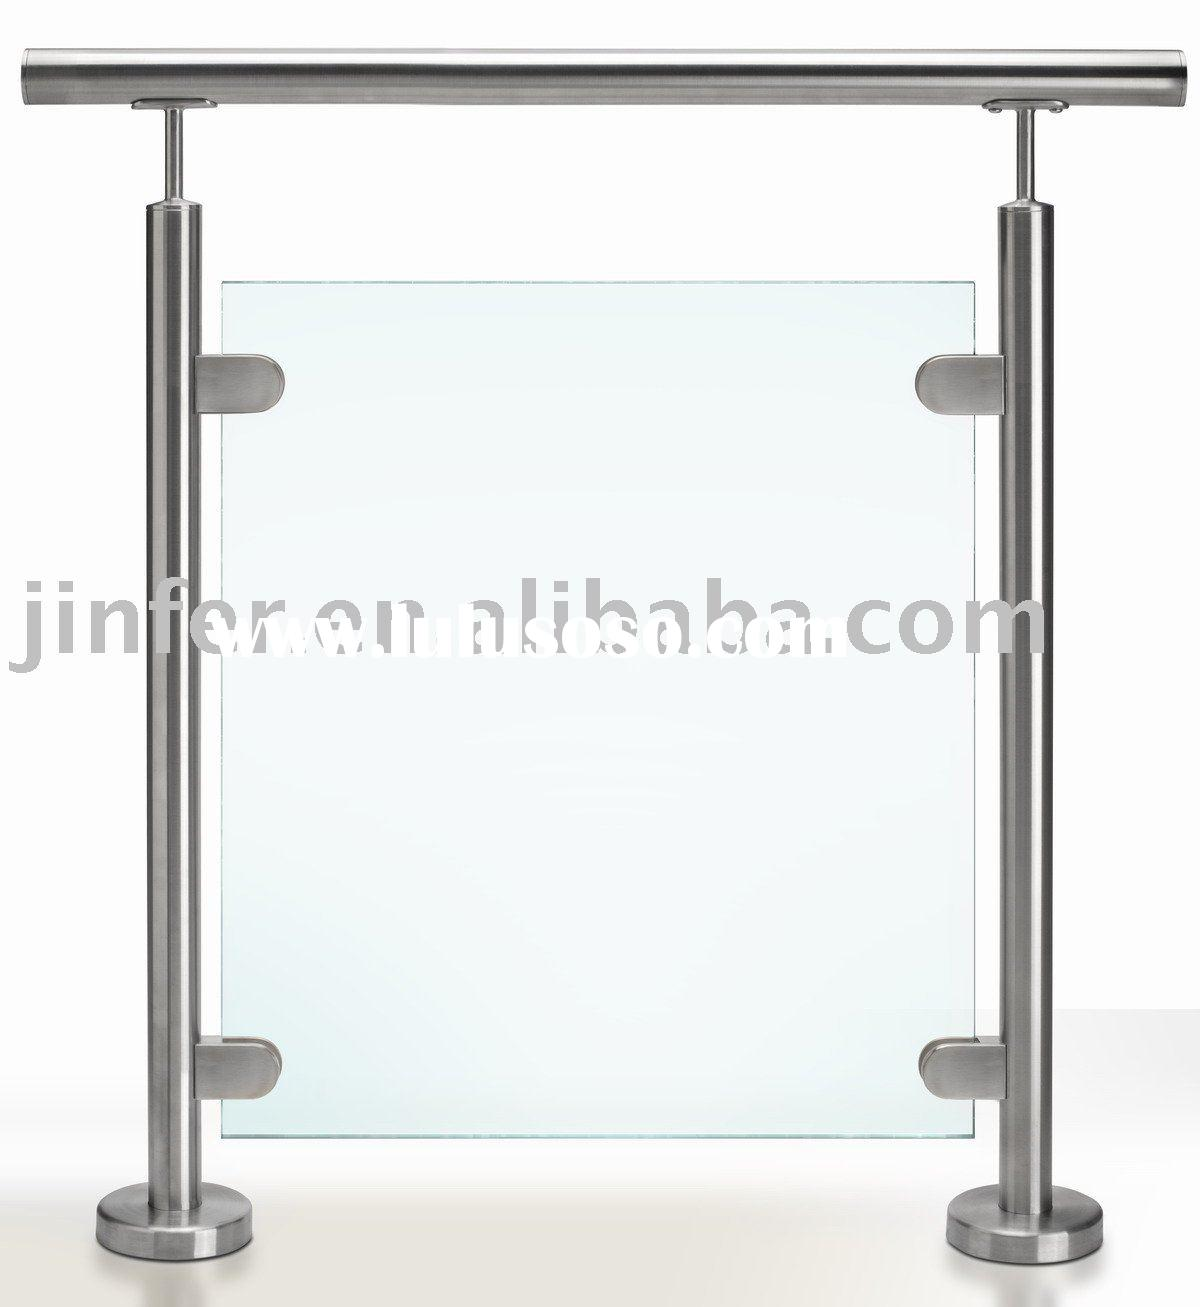 stainless steel railing philippines stainless steel. Black Bedroom Furniture Sets. Home Design Ideas